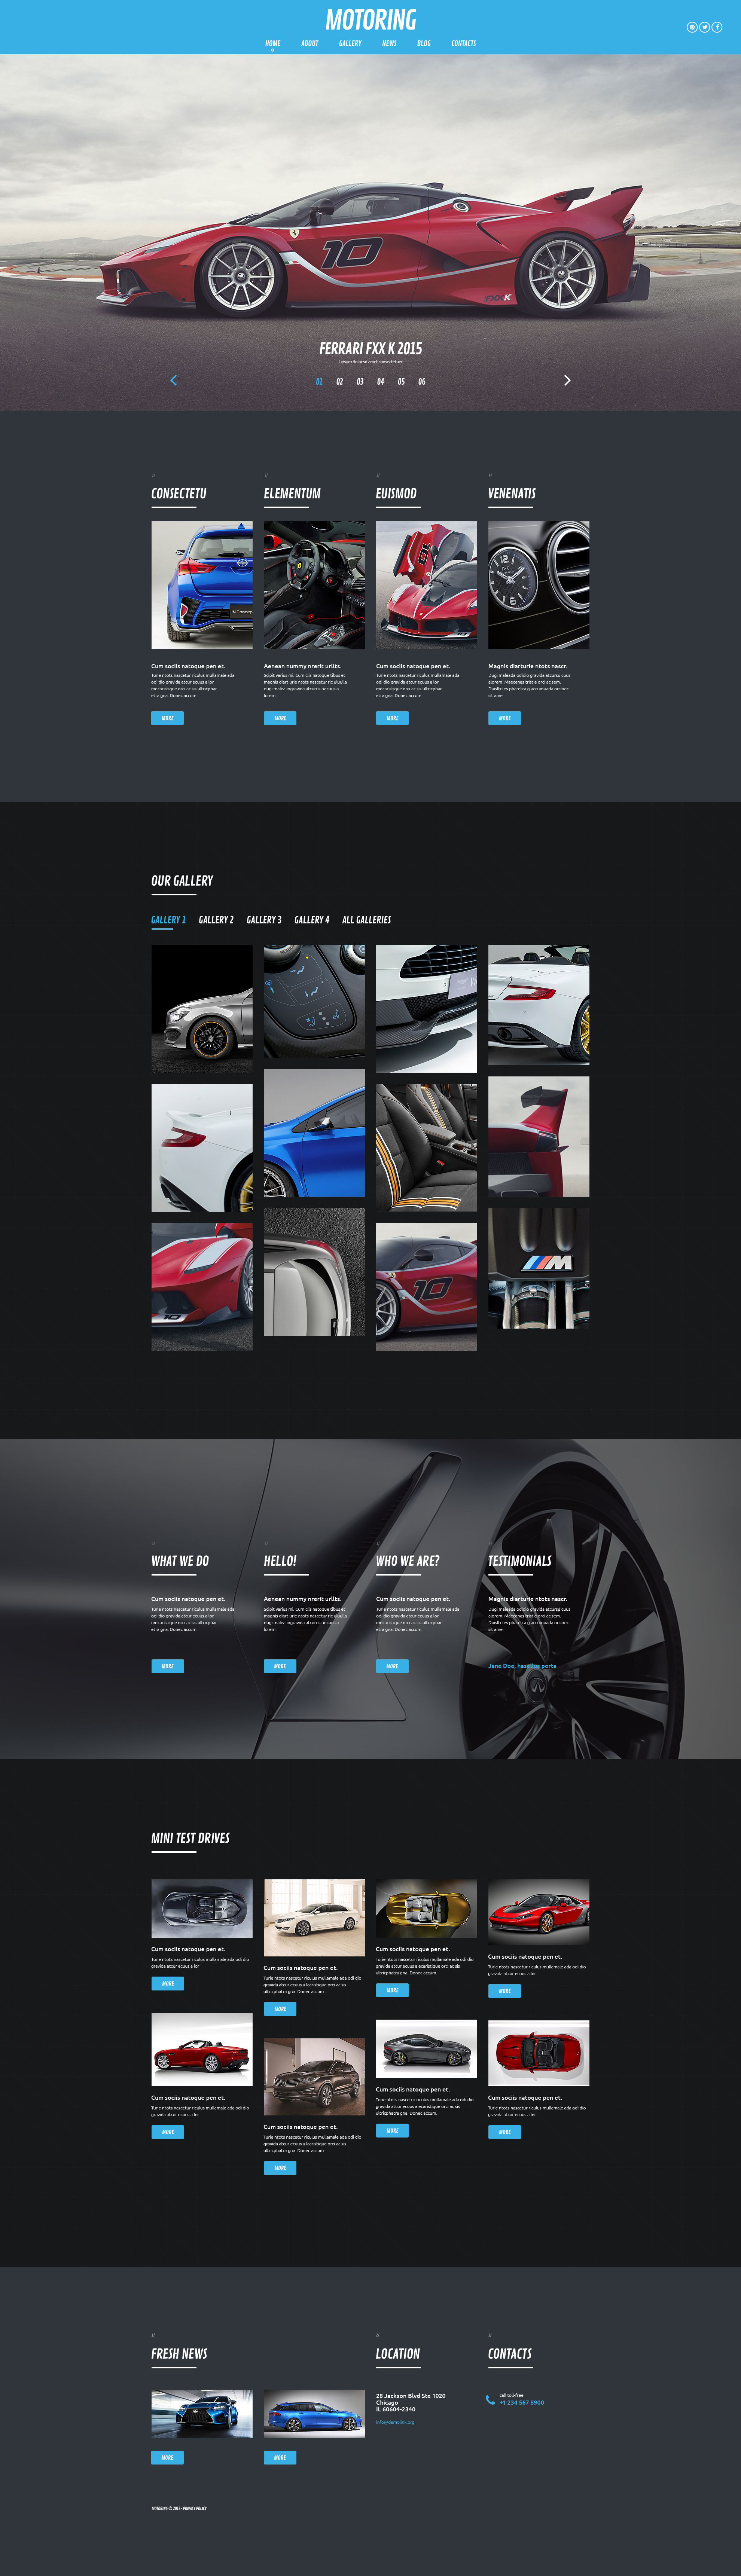 Motoring WordPress Theme - screenshot